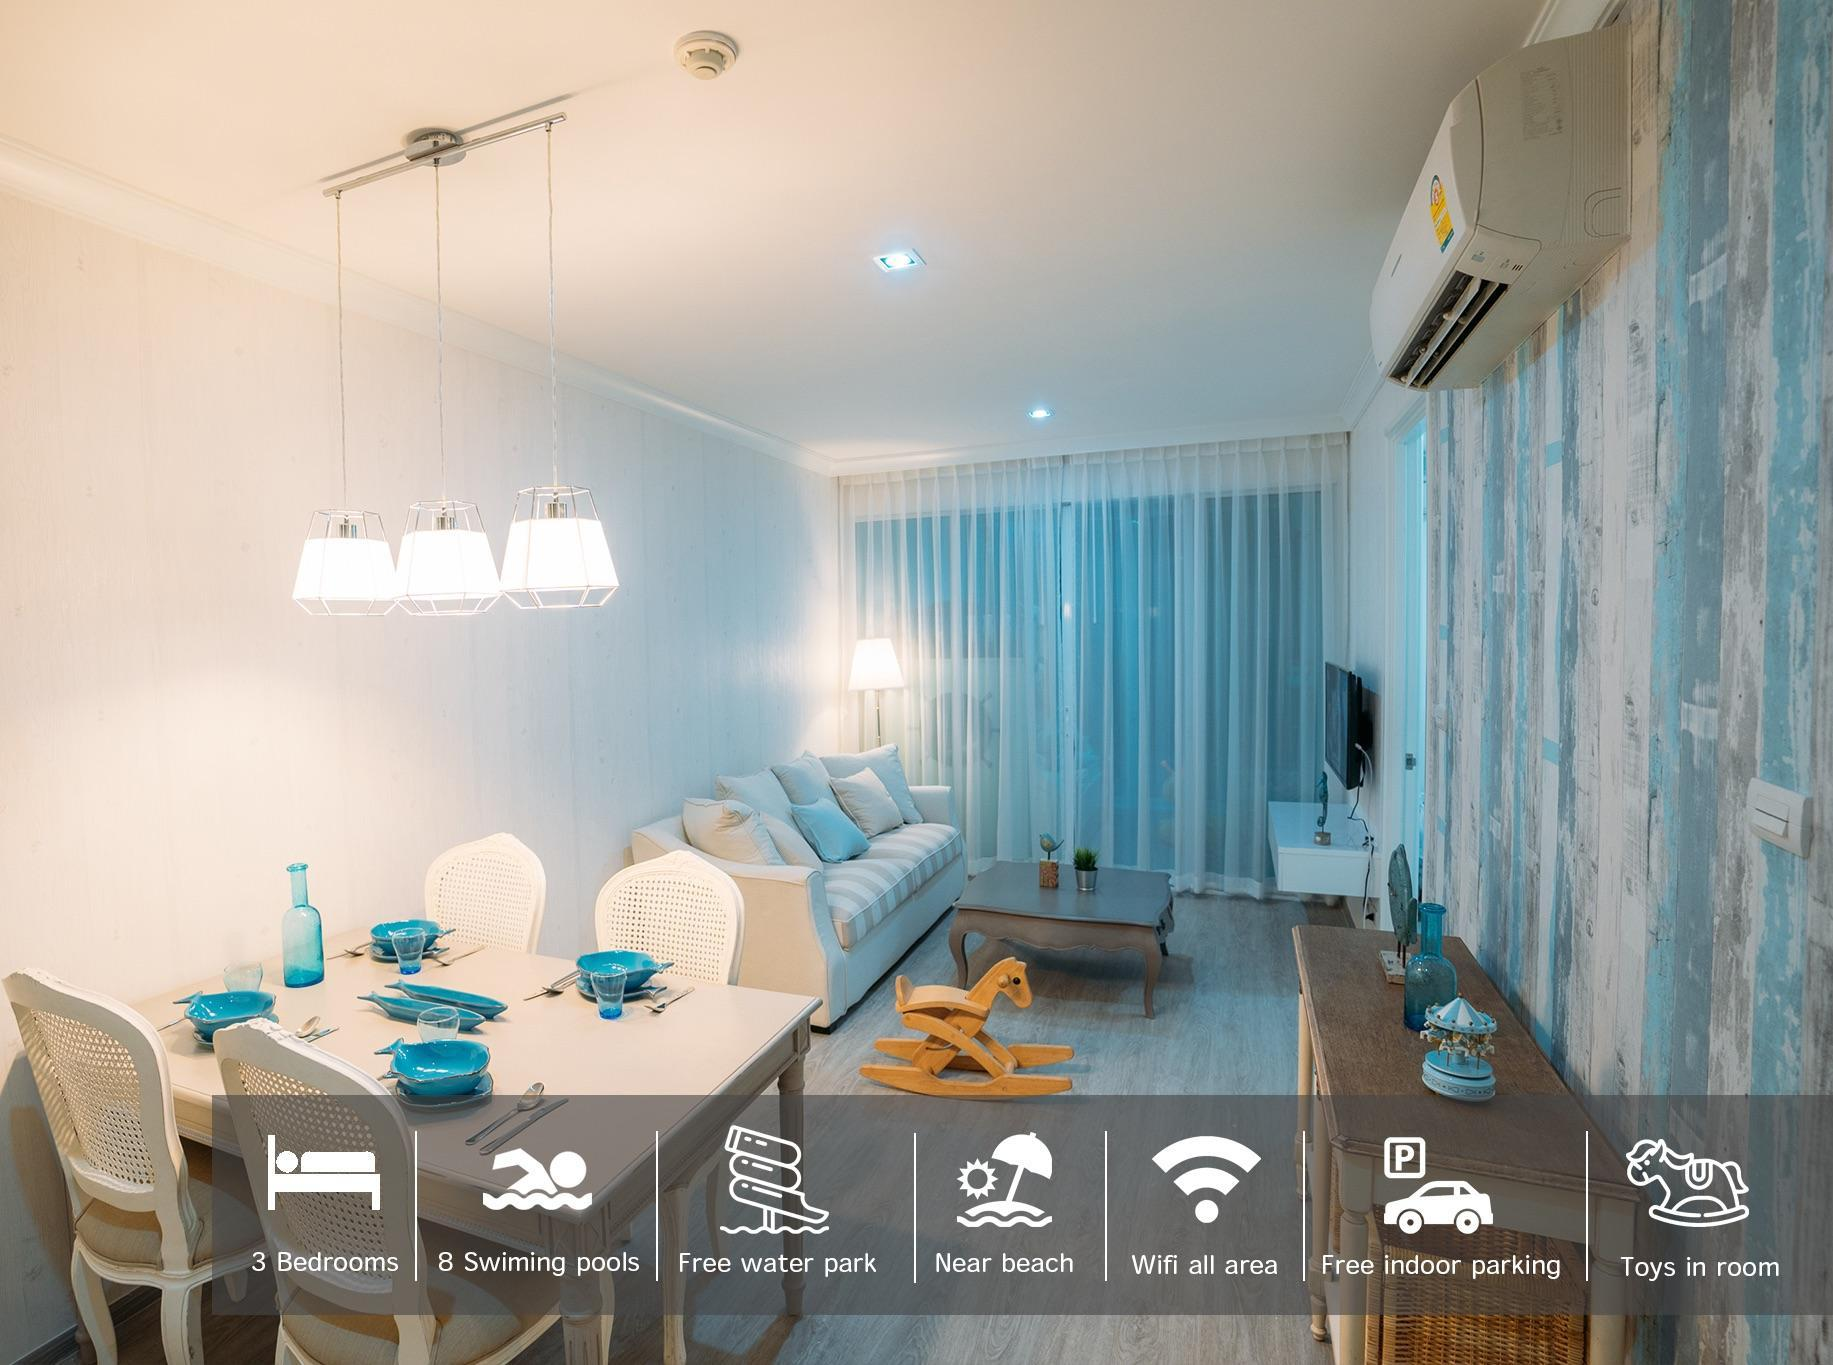 My Resort Hua Hin Room D105 With Free Water Park